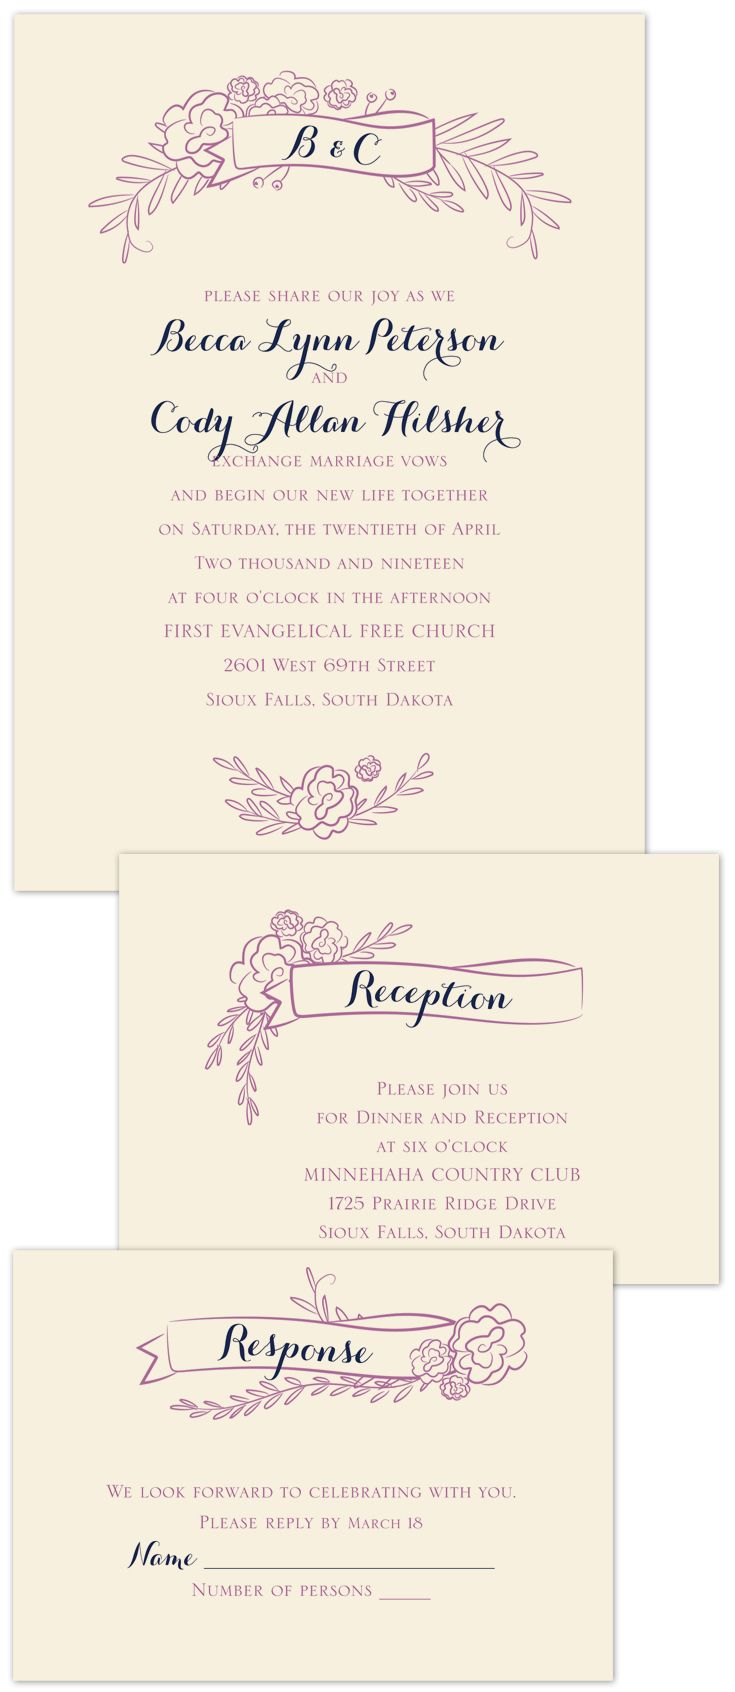 Charming Banners - Separate and Send Invitation | Banners, Floral ...